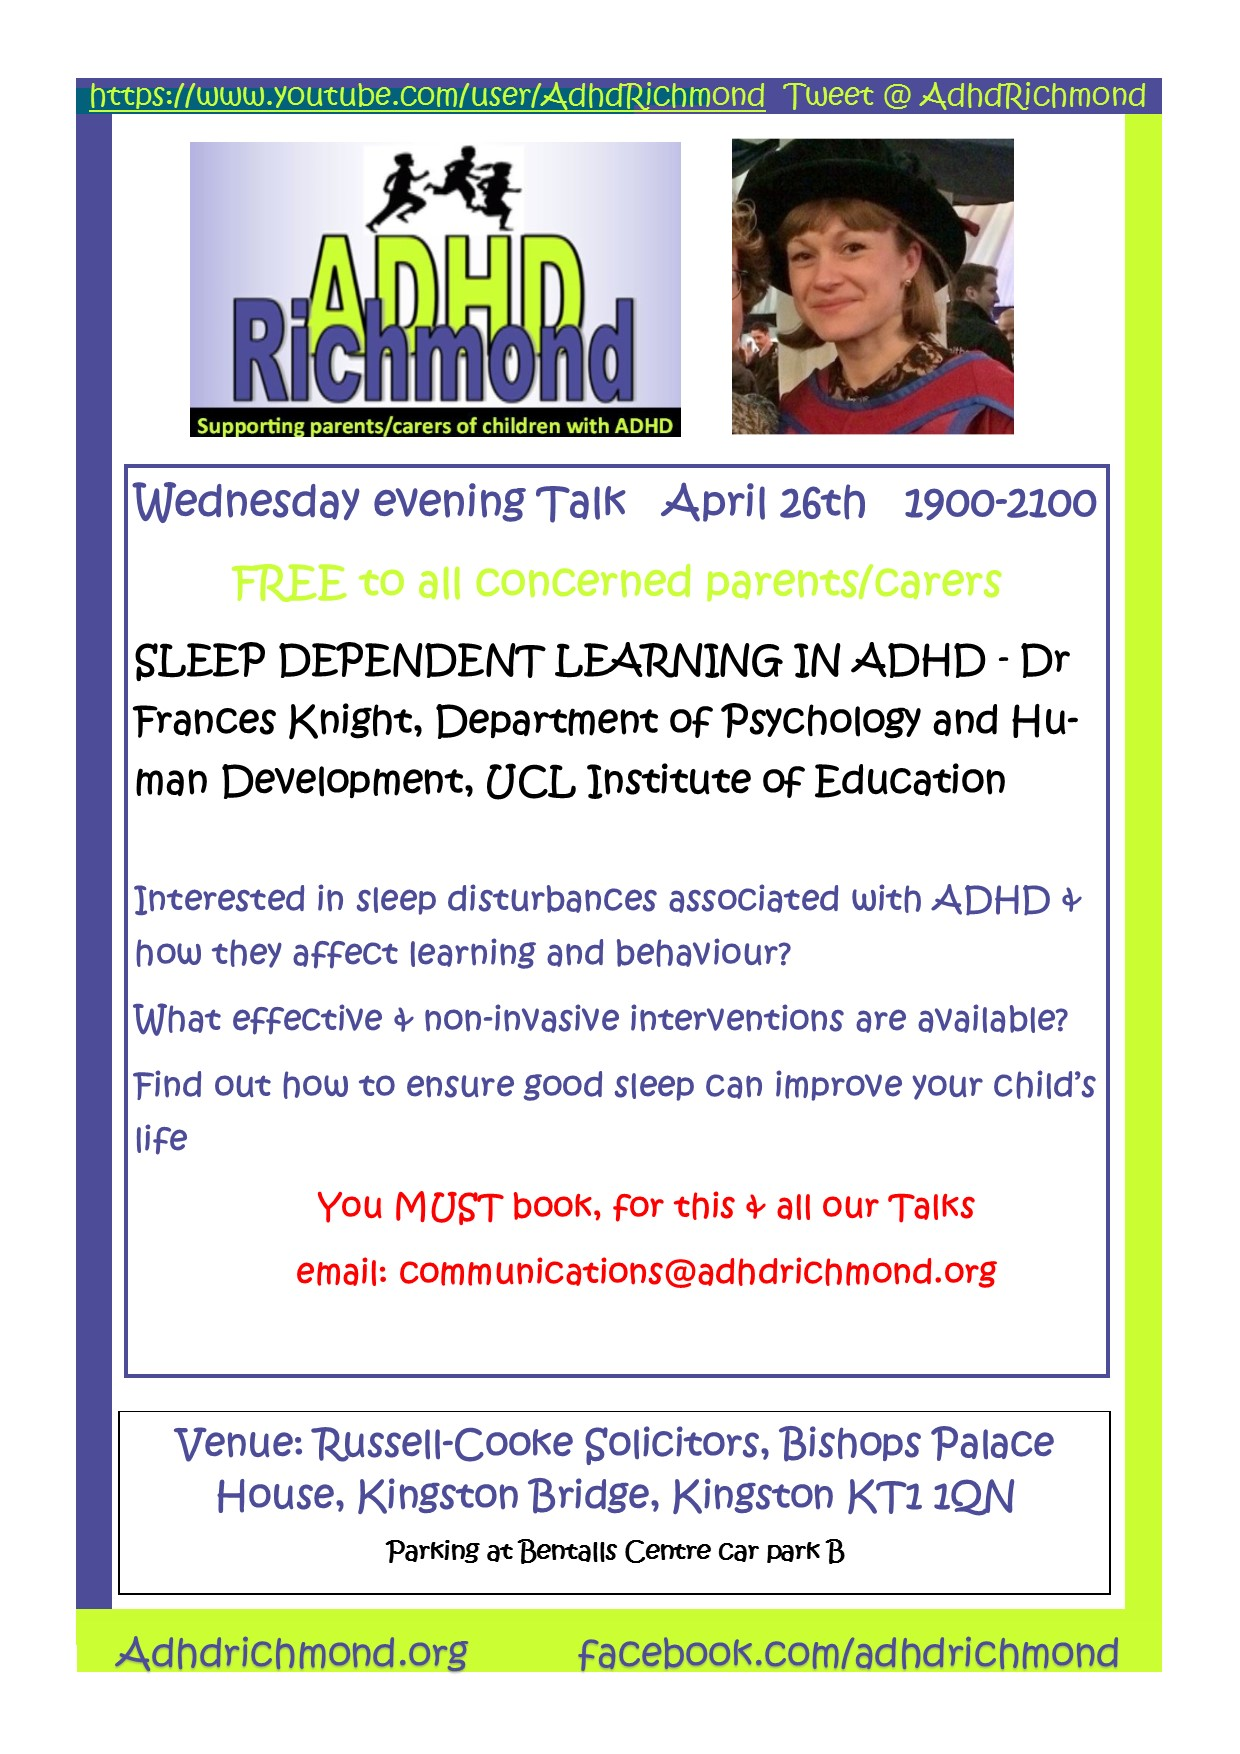 ADHD Richmond free evening Talk on Sleep Dependent Learning in ADHD